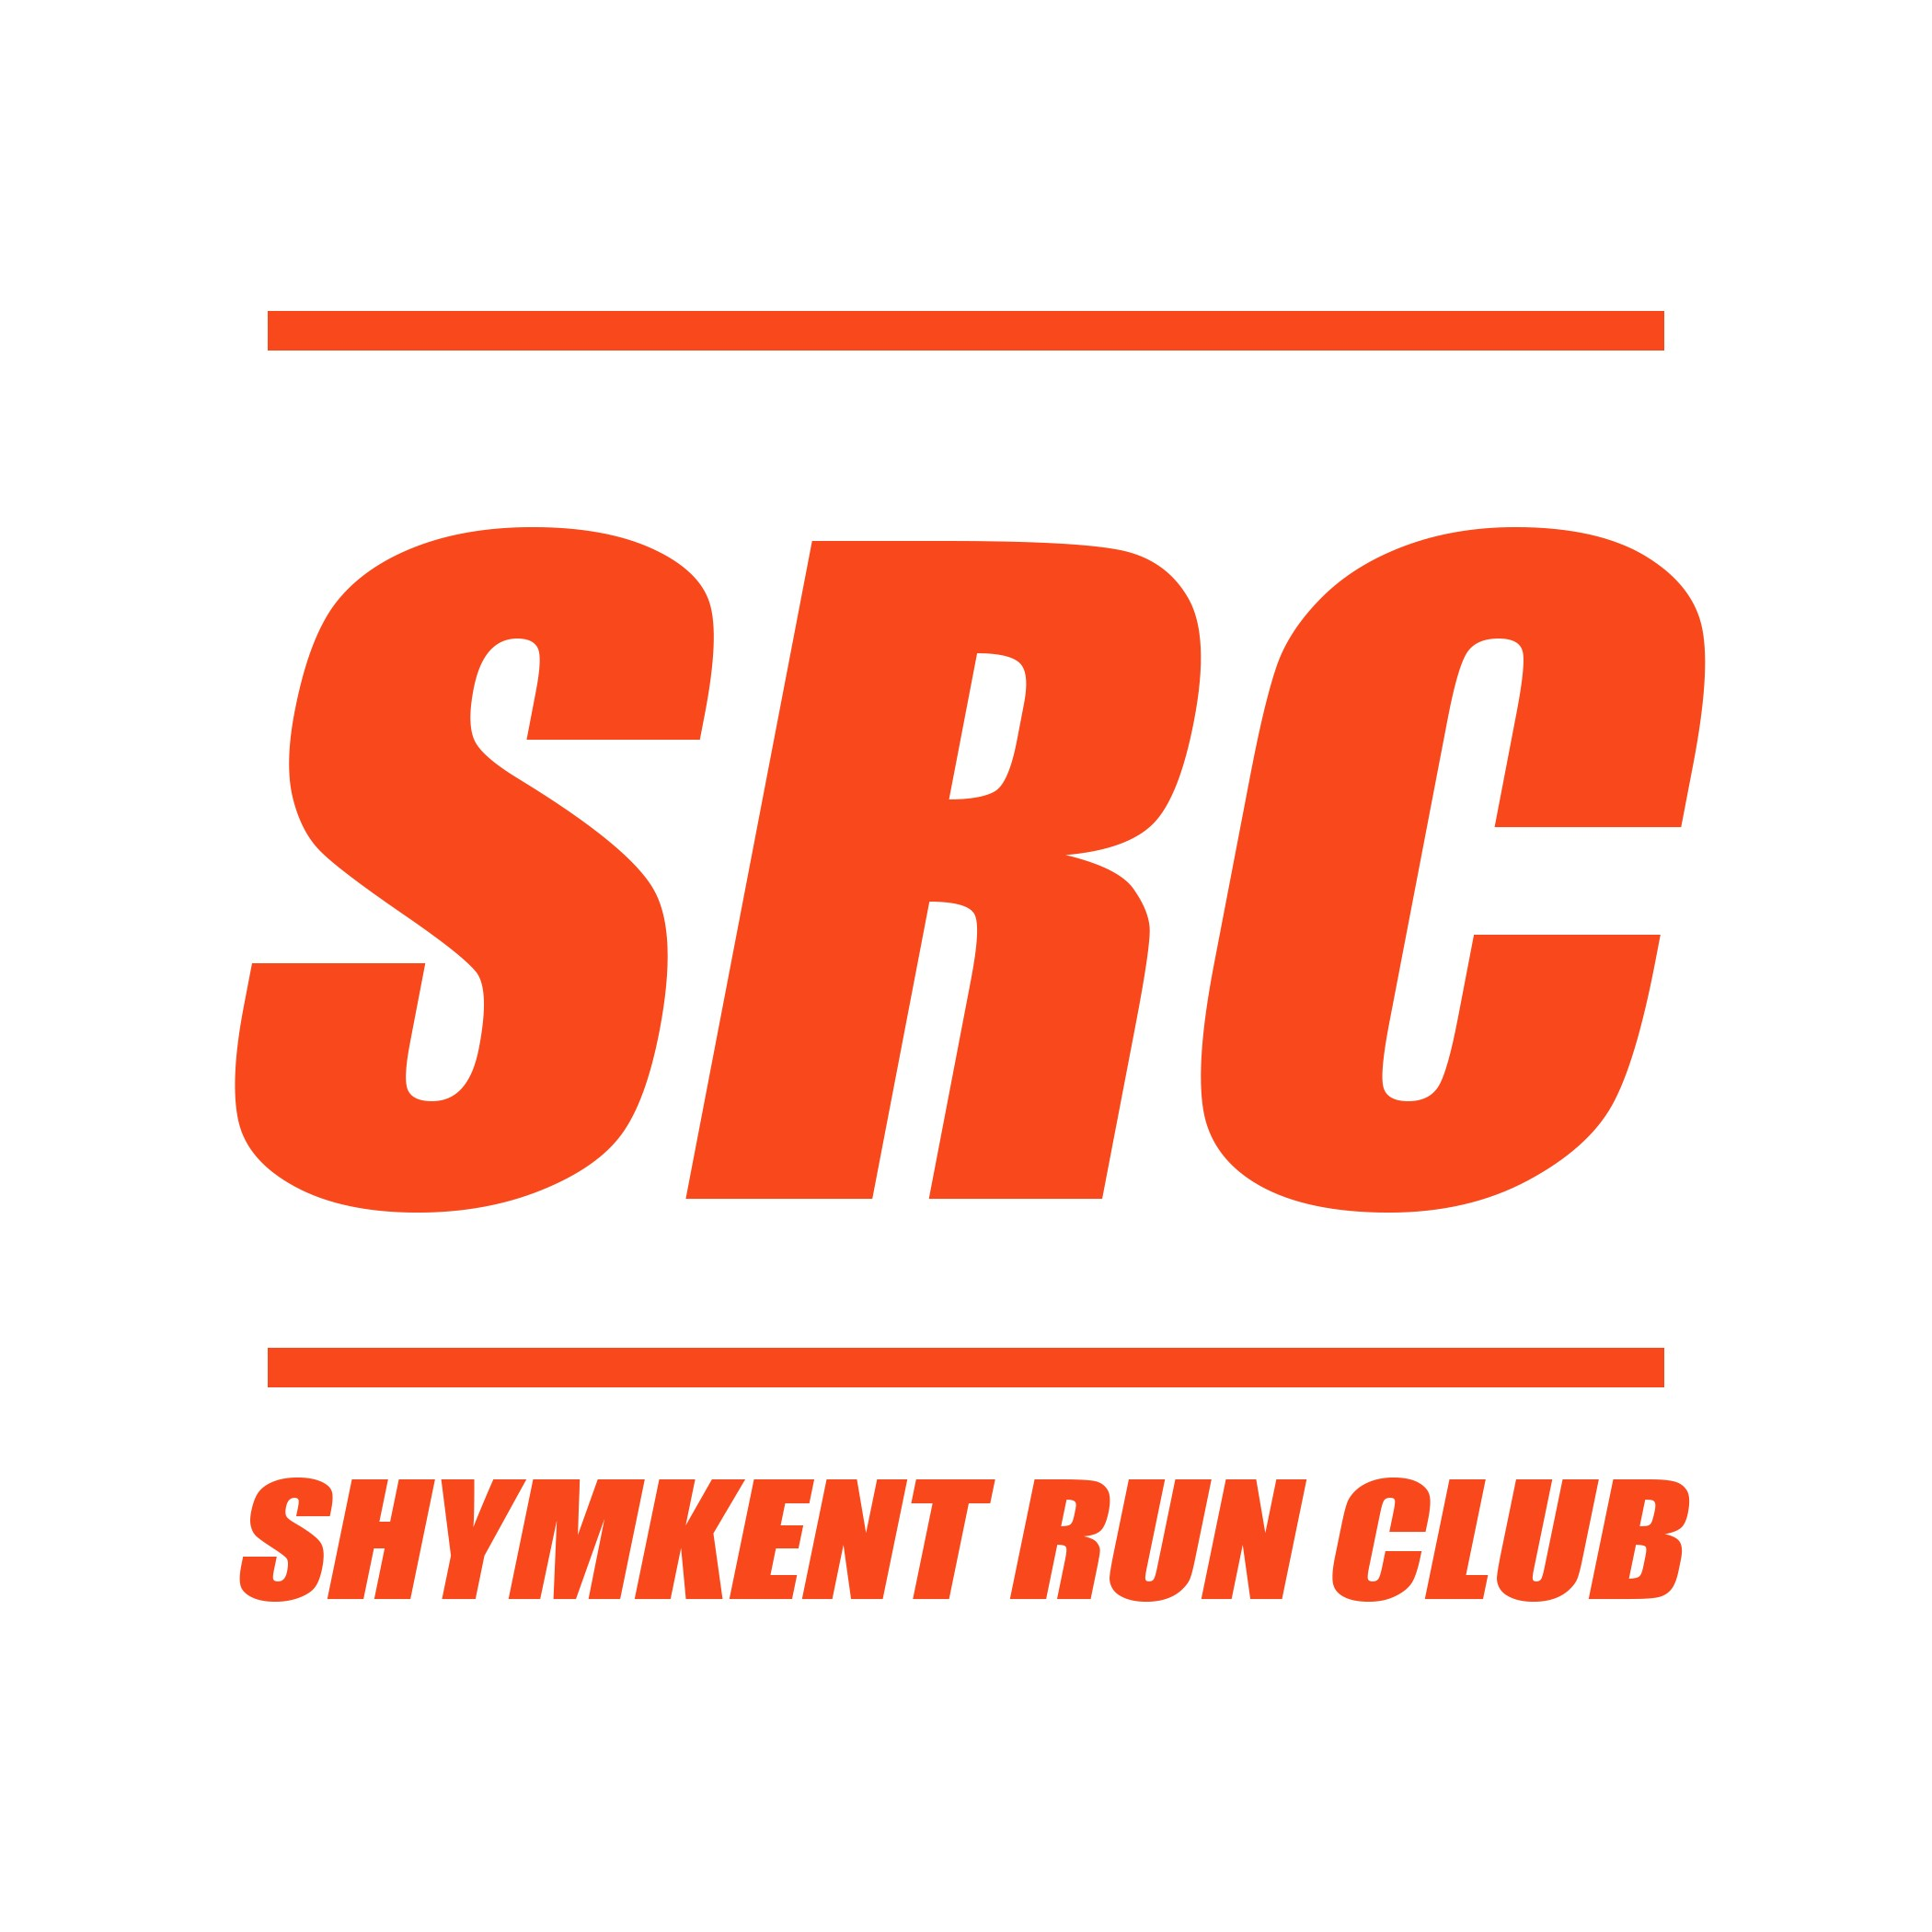 SR Club Logo 3 Orange.jpg